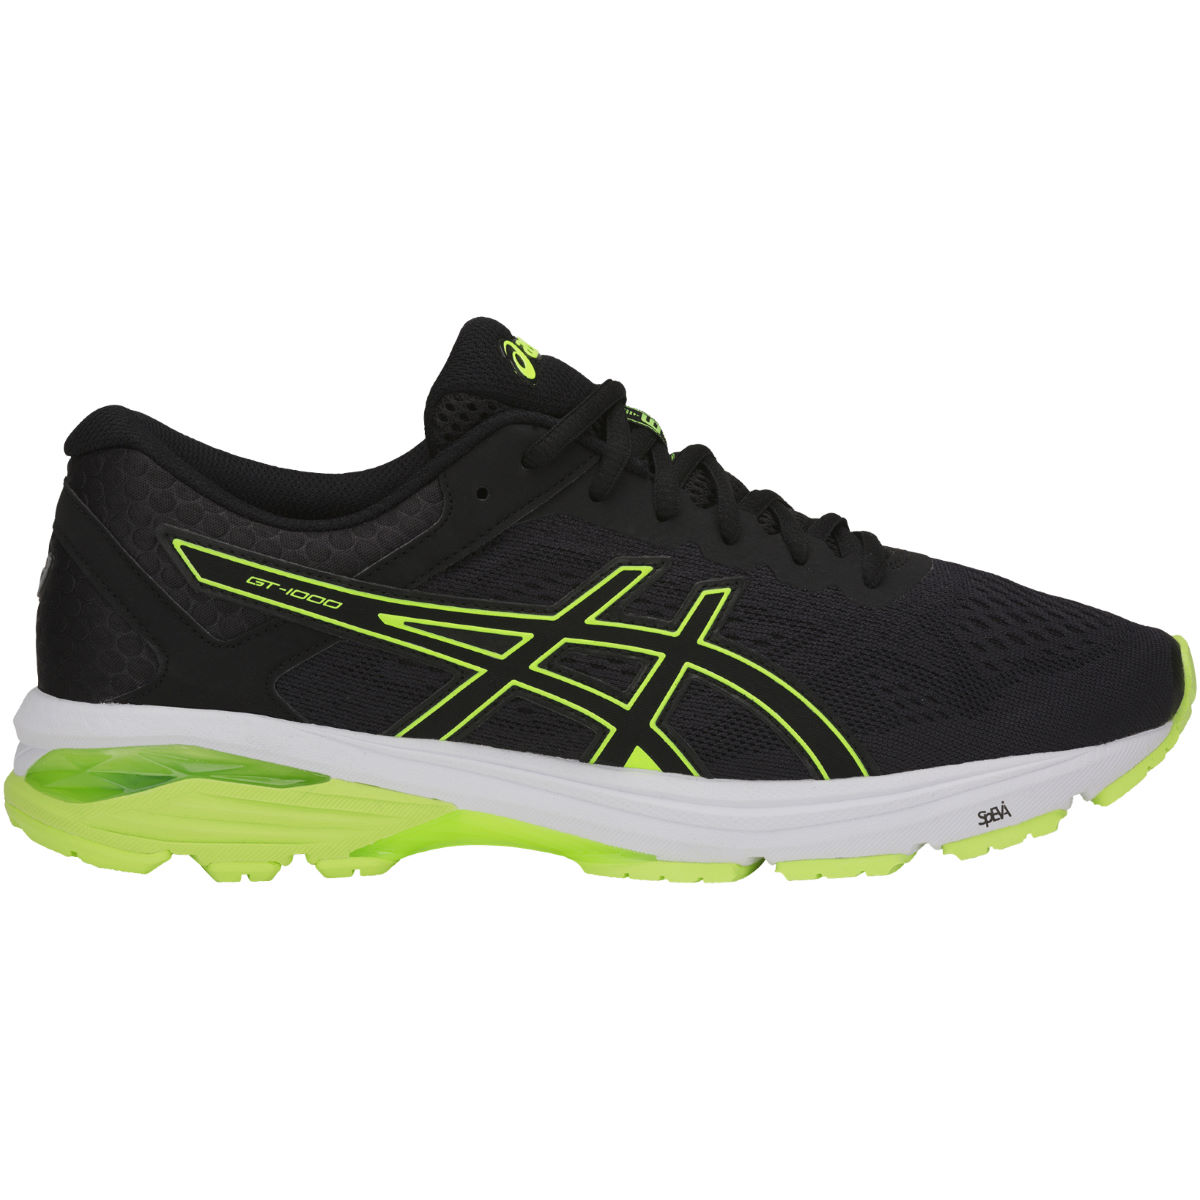 Chaussures Asics GT-1000 6 - UK 11 BLACK/SAFETY YELLOW/